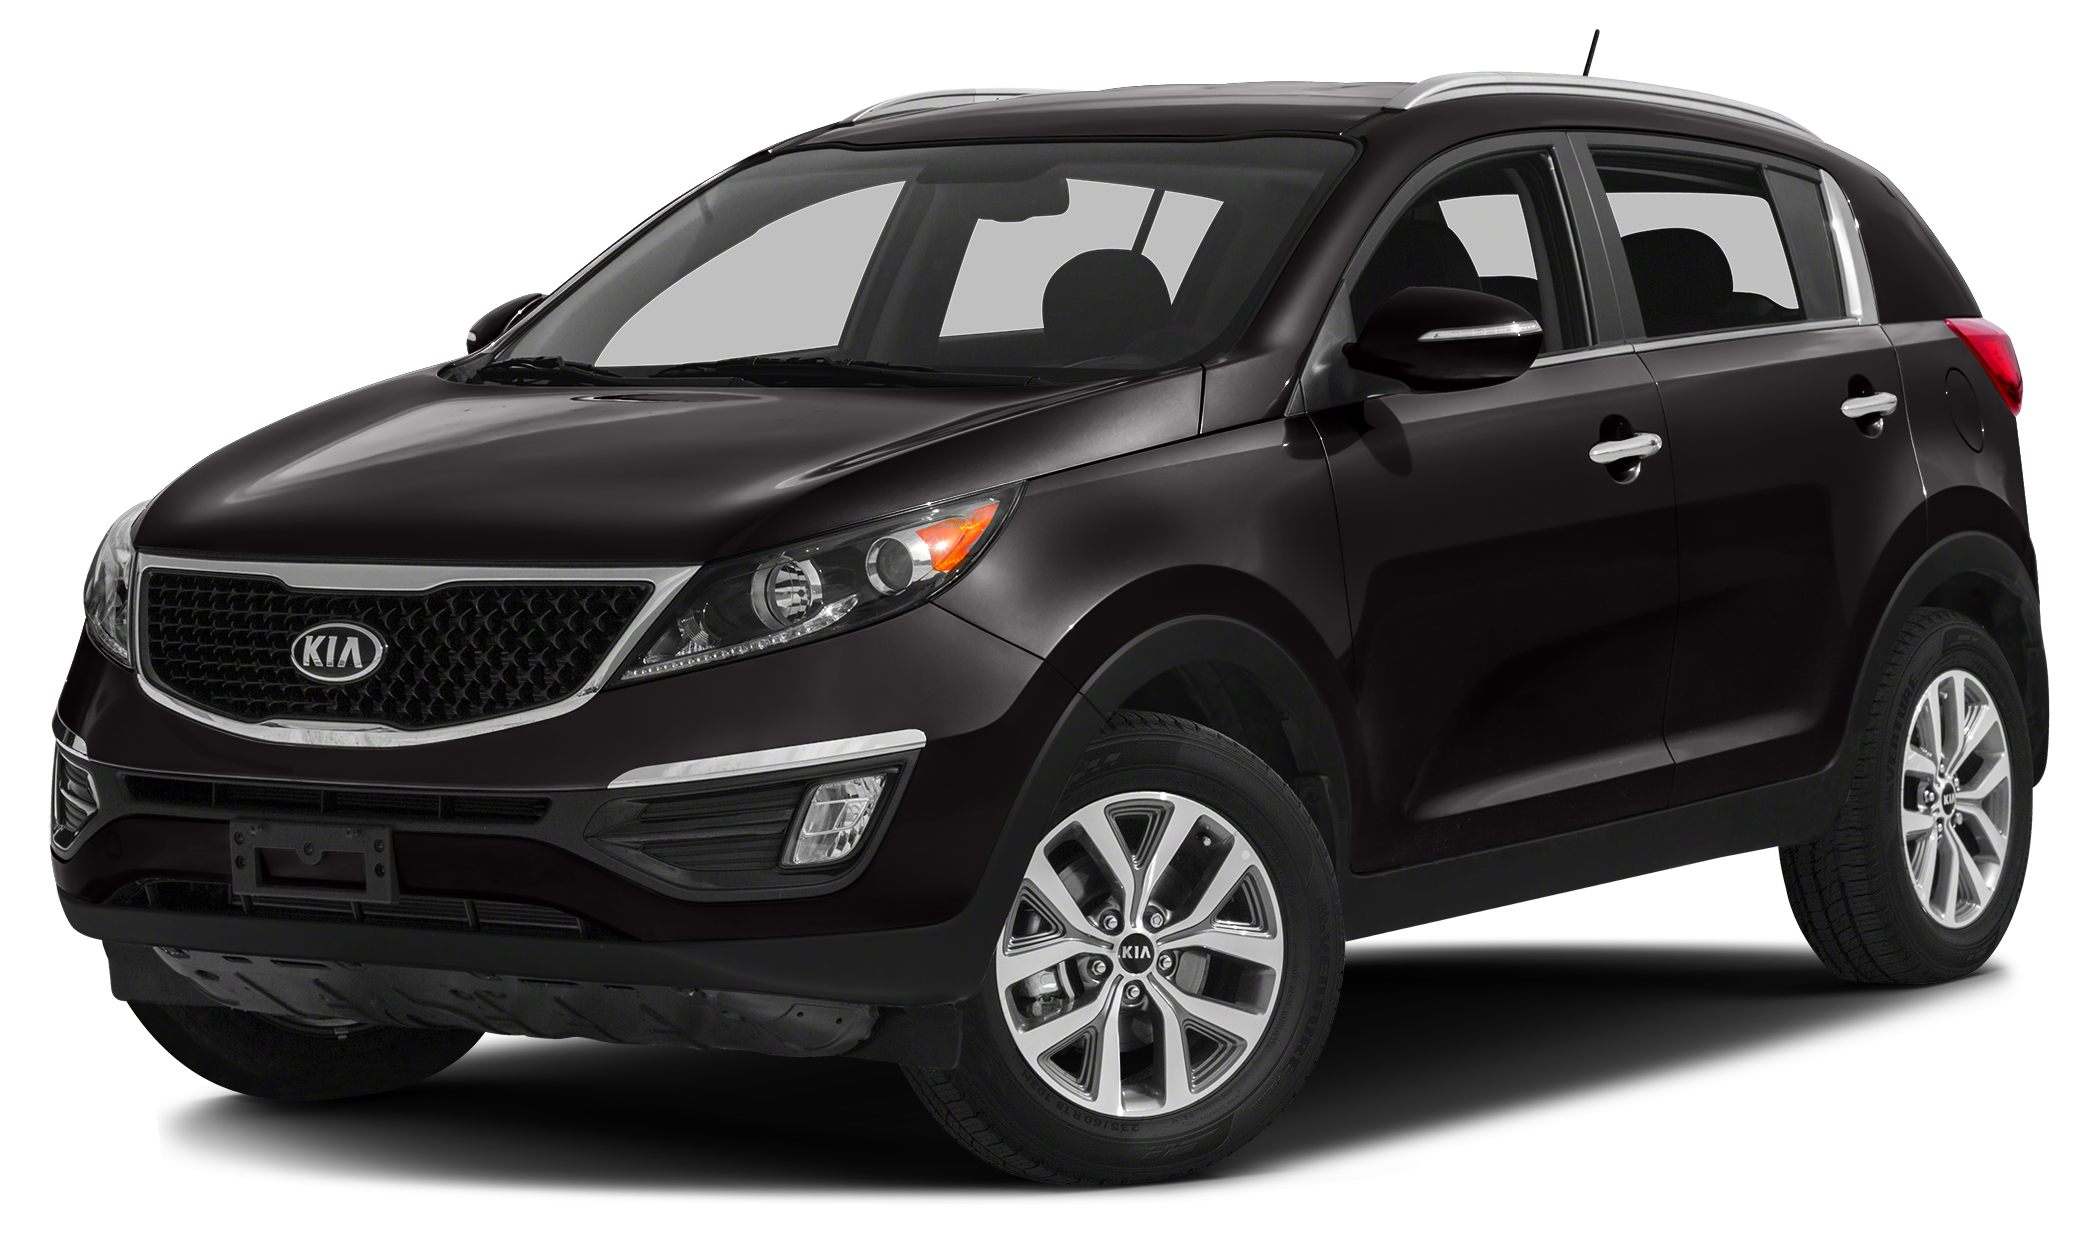 2015 Kia Sportage LX AWD Backup Camera Roof Rails Power Windows and Locks Cruise Control Sate